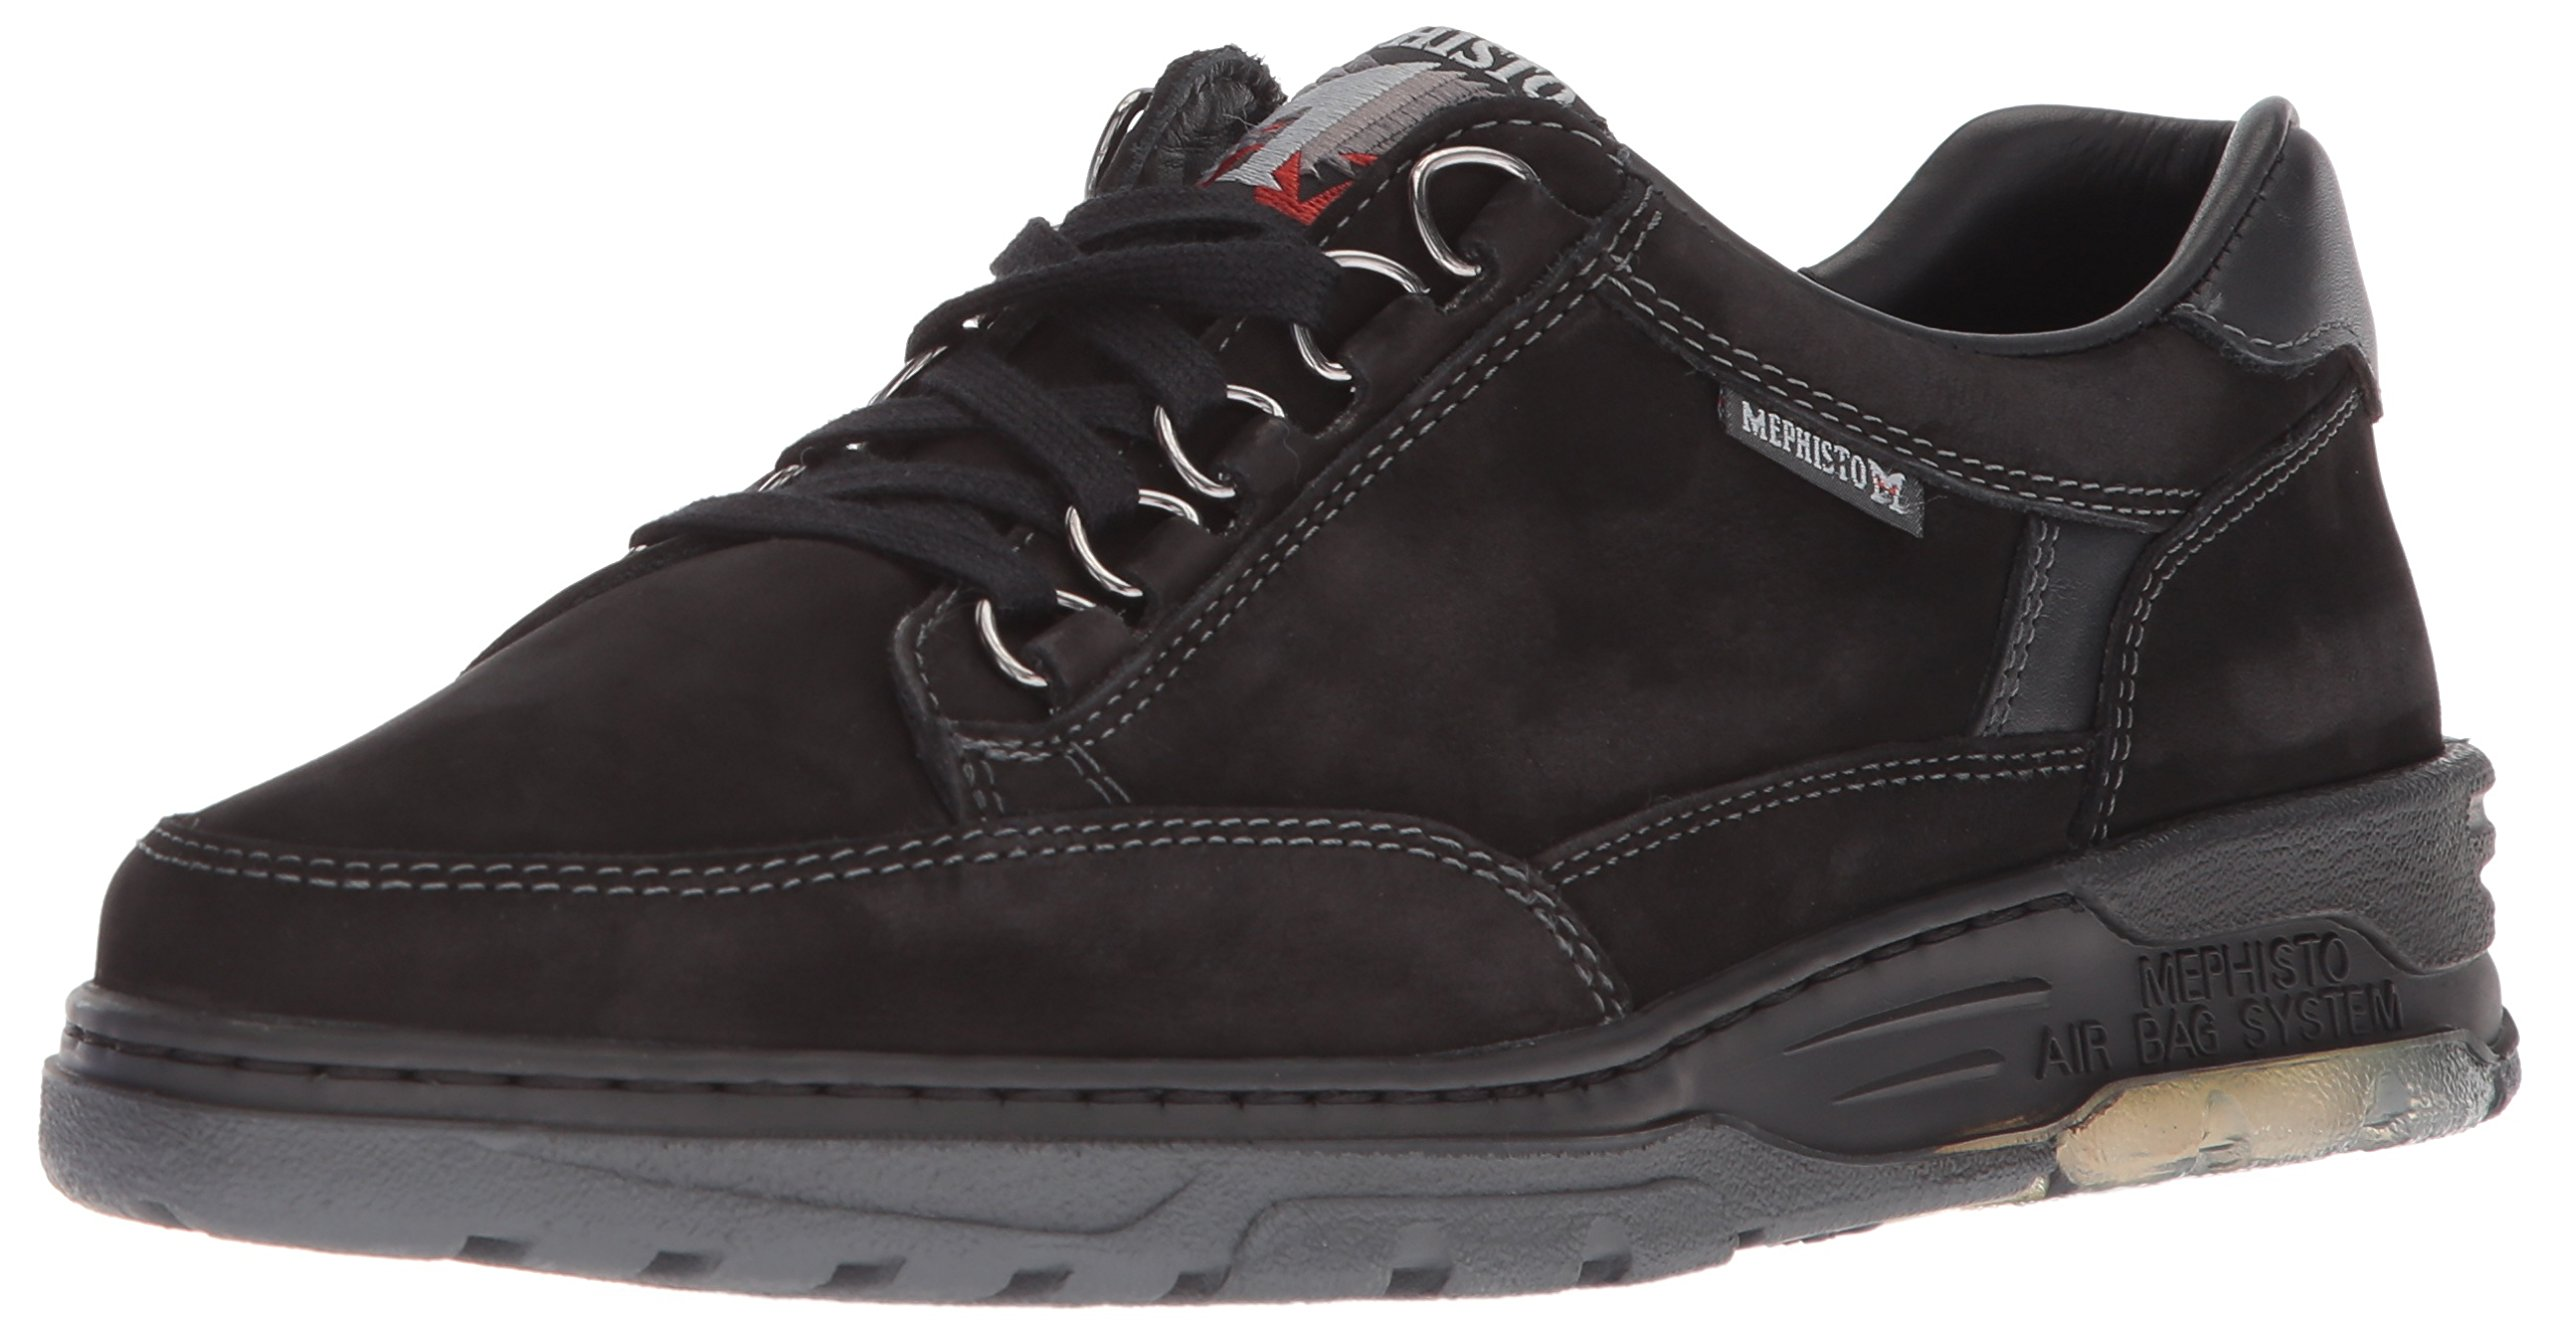 Mephisto Women's Natasha Oxford, Black Nubuck/Smooth, 9.5 M US